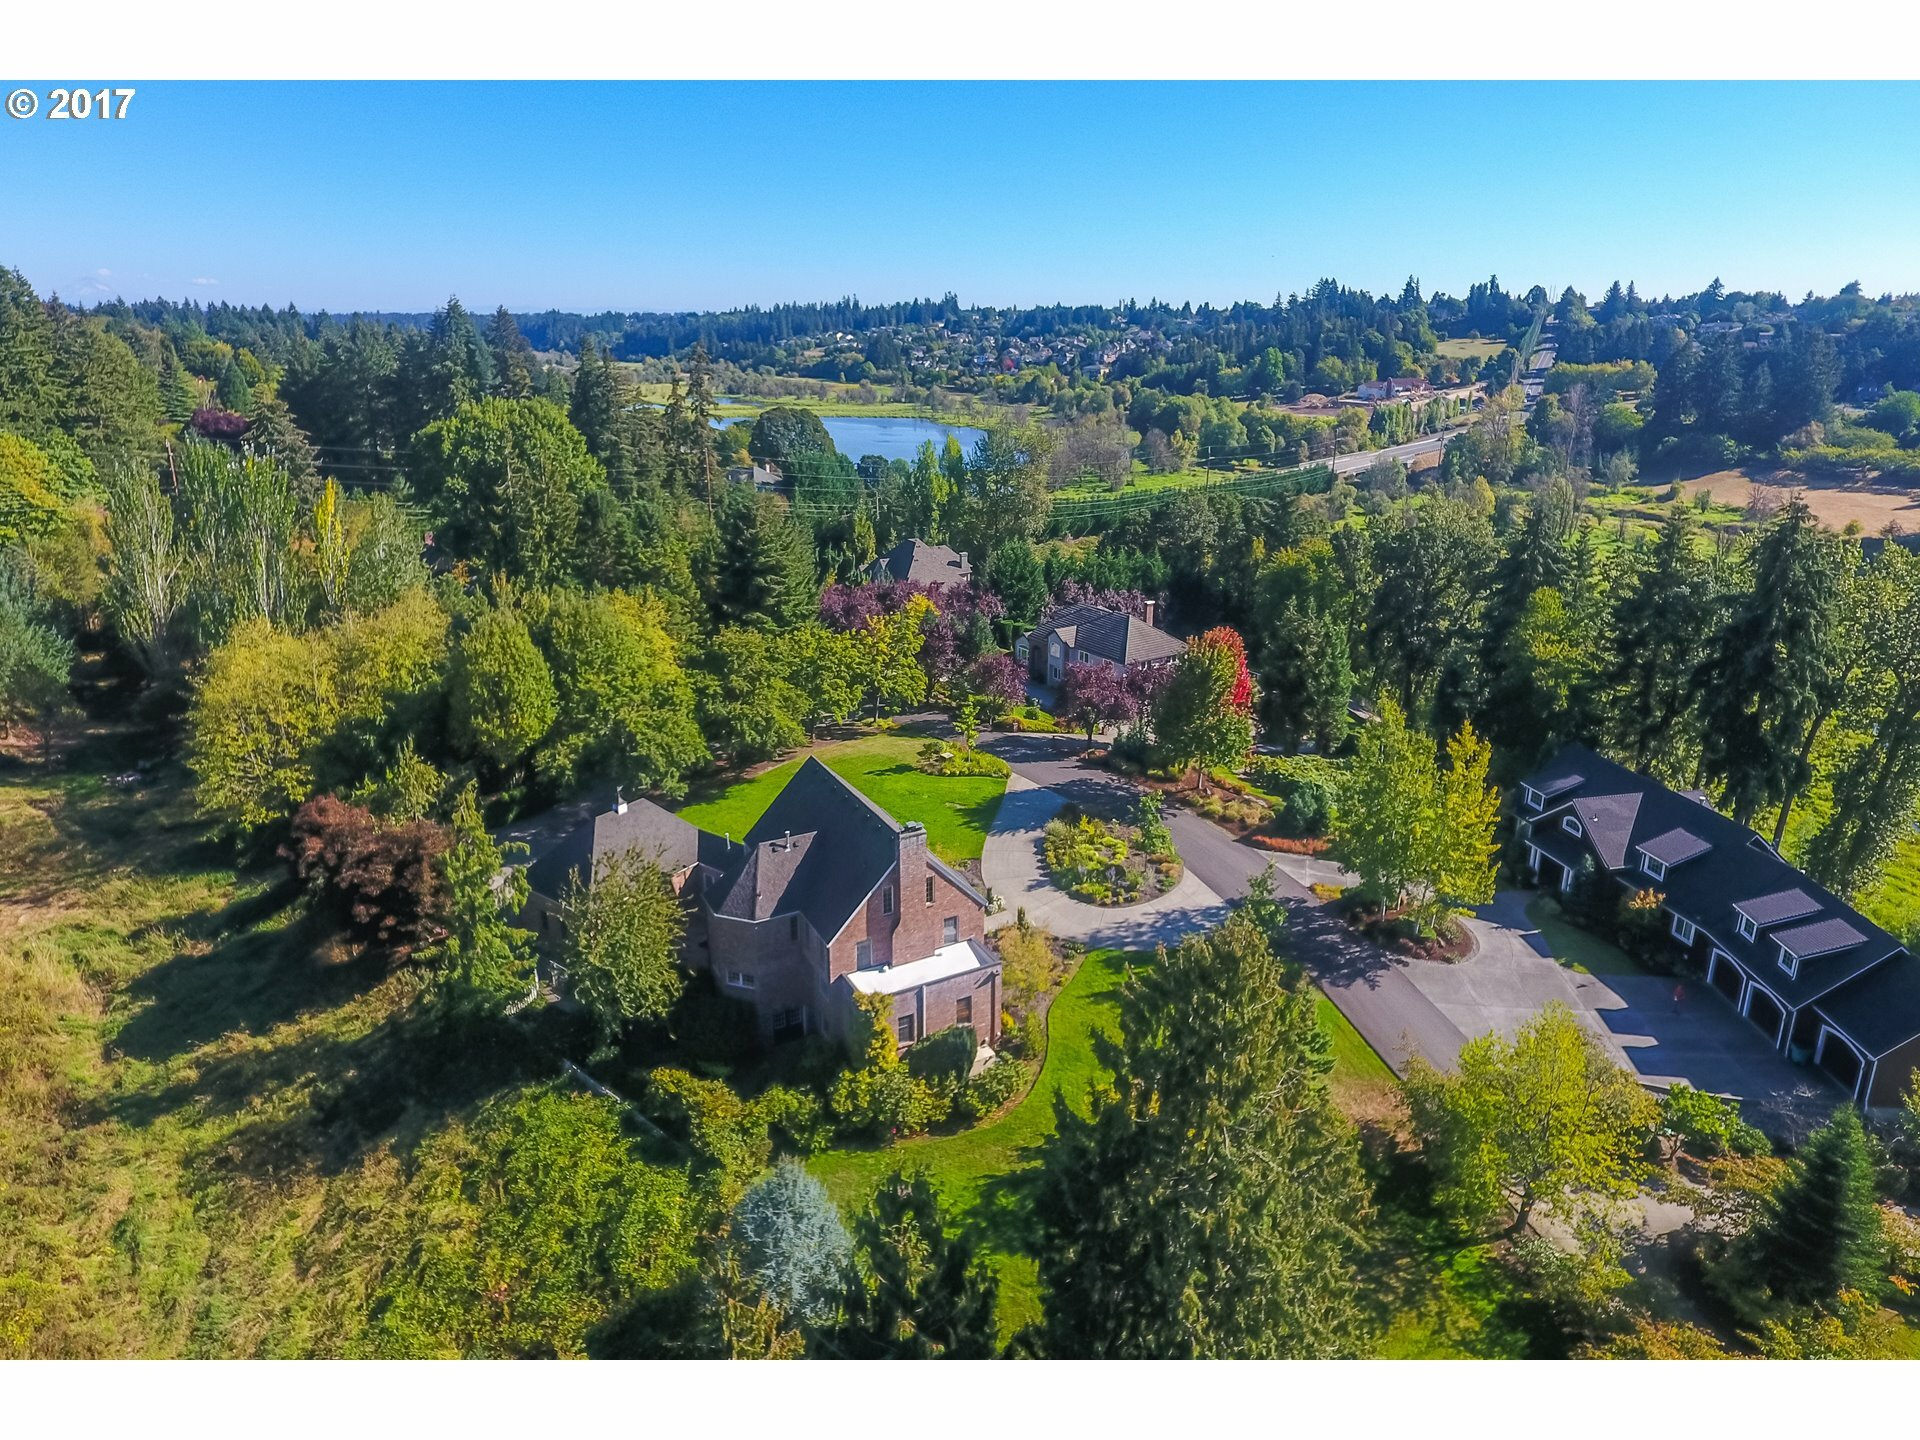 3618 Nw Bliss Rd, Vancouver, WA - USA (photo 2)